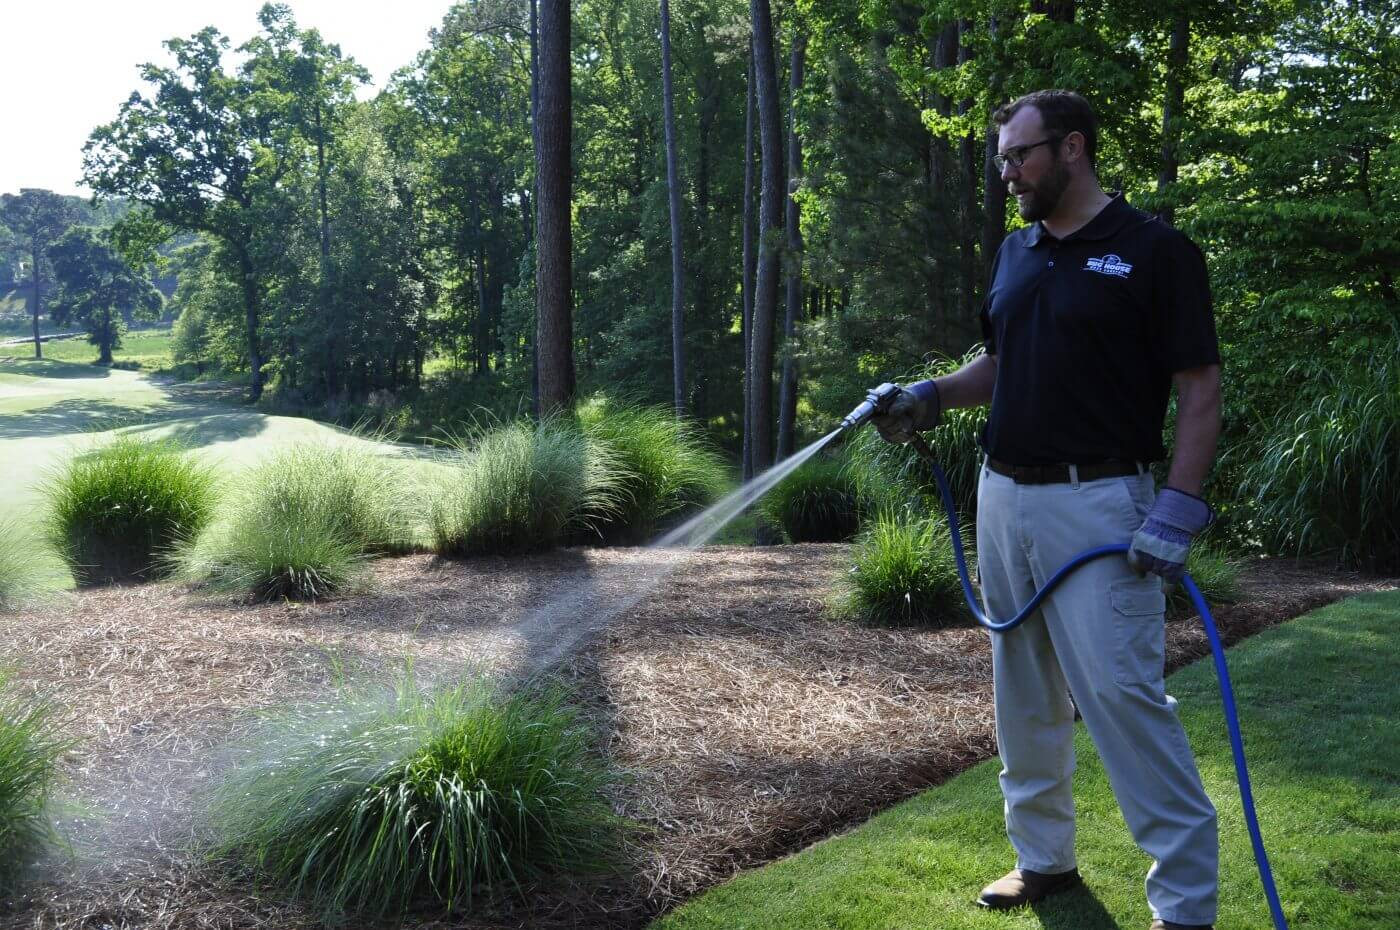 Bug House Lake Oconee employee watering lawn